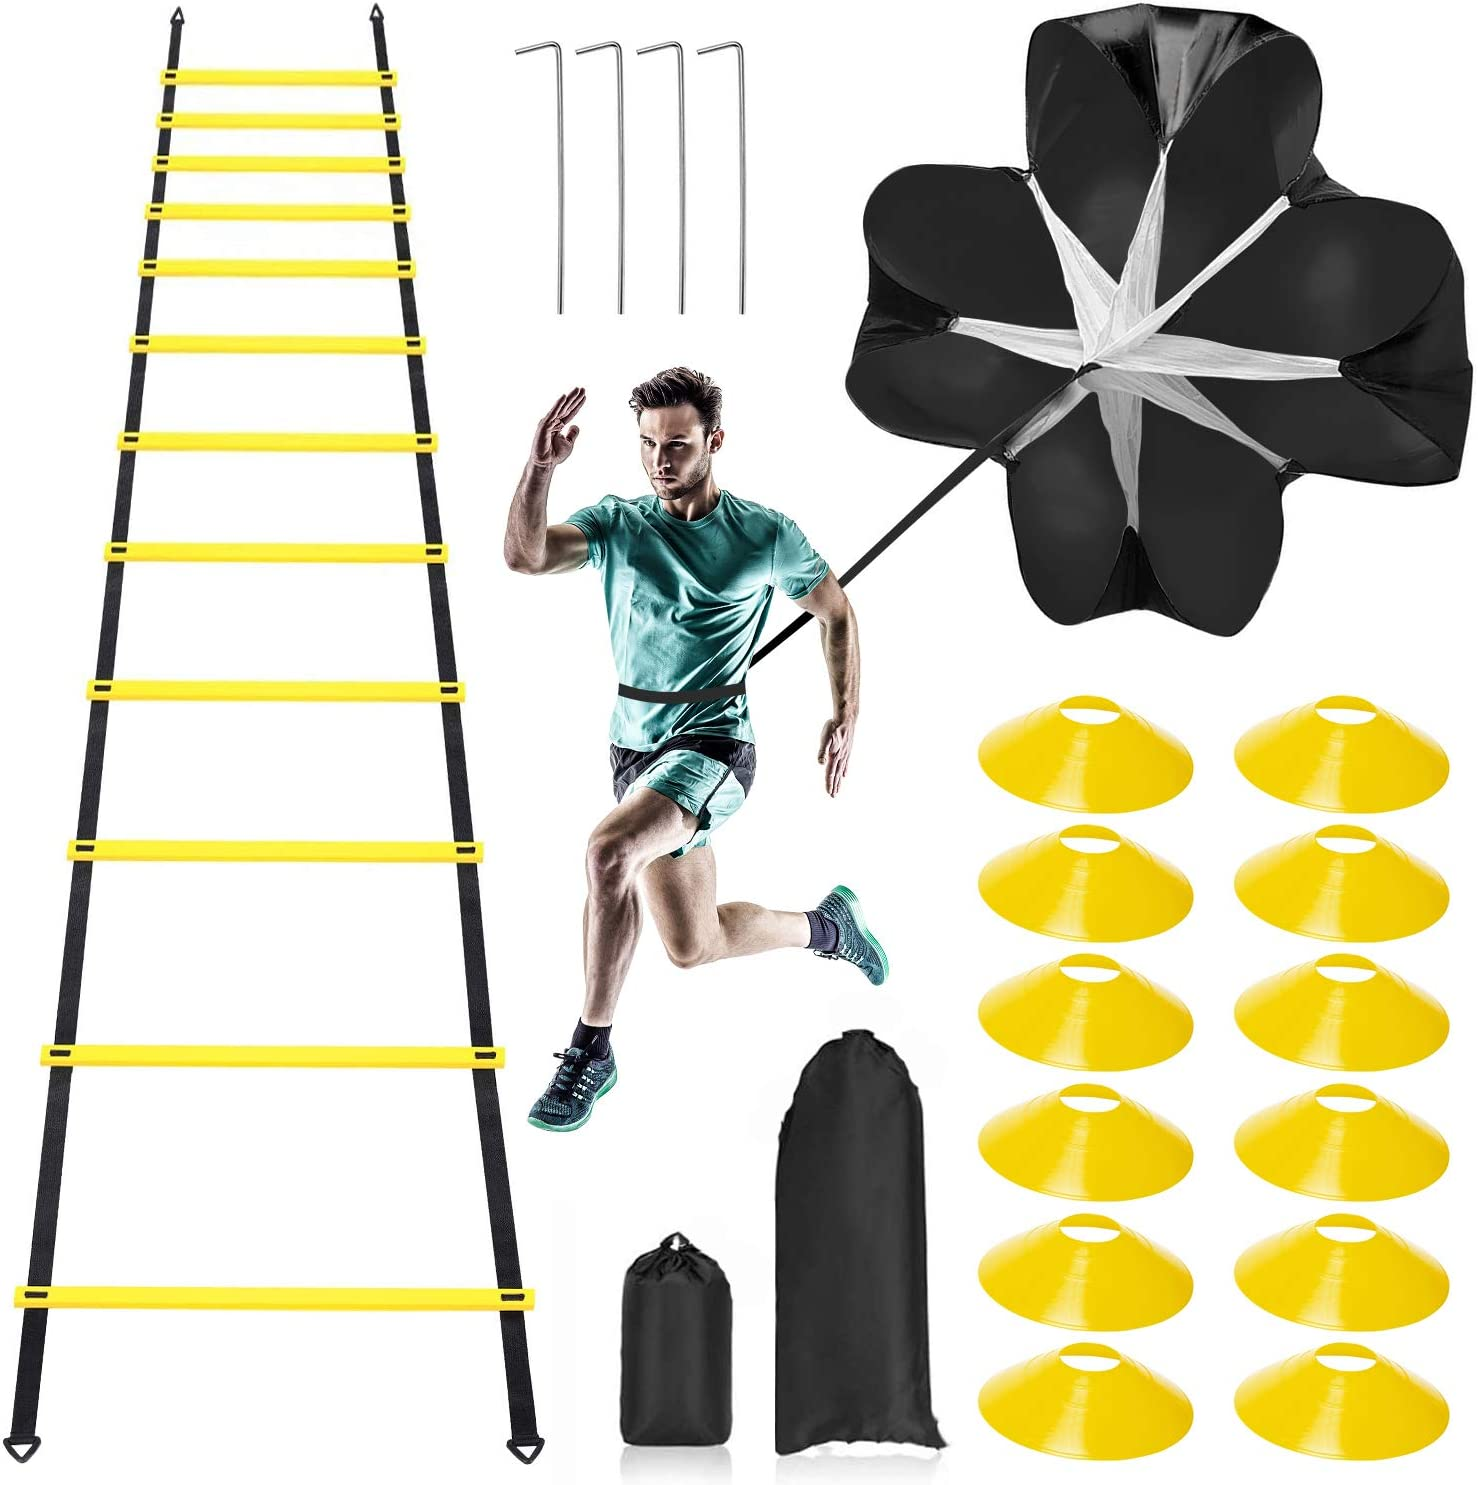 Pro Speed Agility Training Kit—Includes 12 Rung 20ft Adjustable Agility Ladder with Carrying Bag, 12 Disc Cones, 4 Steel Stakes, 1 Resistance Parachute, Use Equipment to Improve Footwork Any Sport